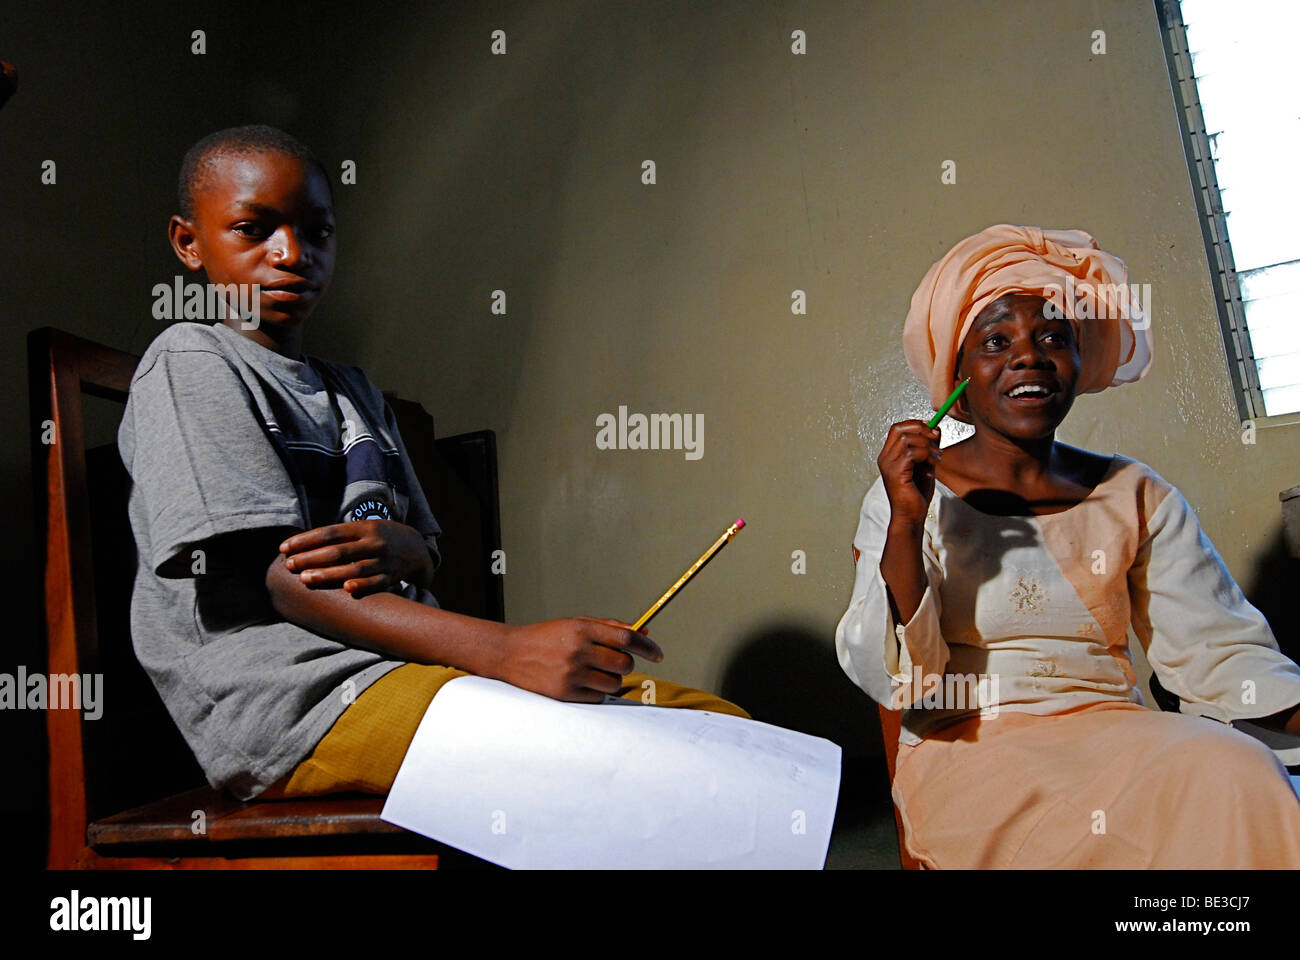 Student with autism and a therapist, Soni, Tanzania, Africa - Stock Image